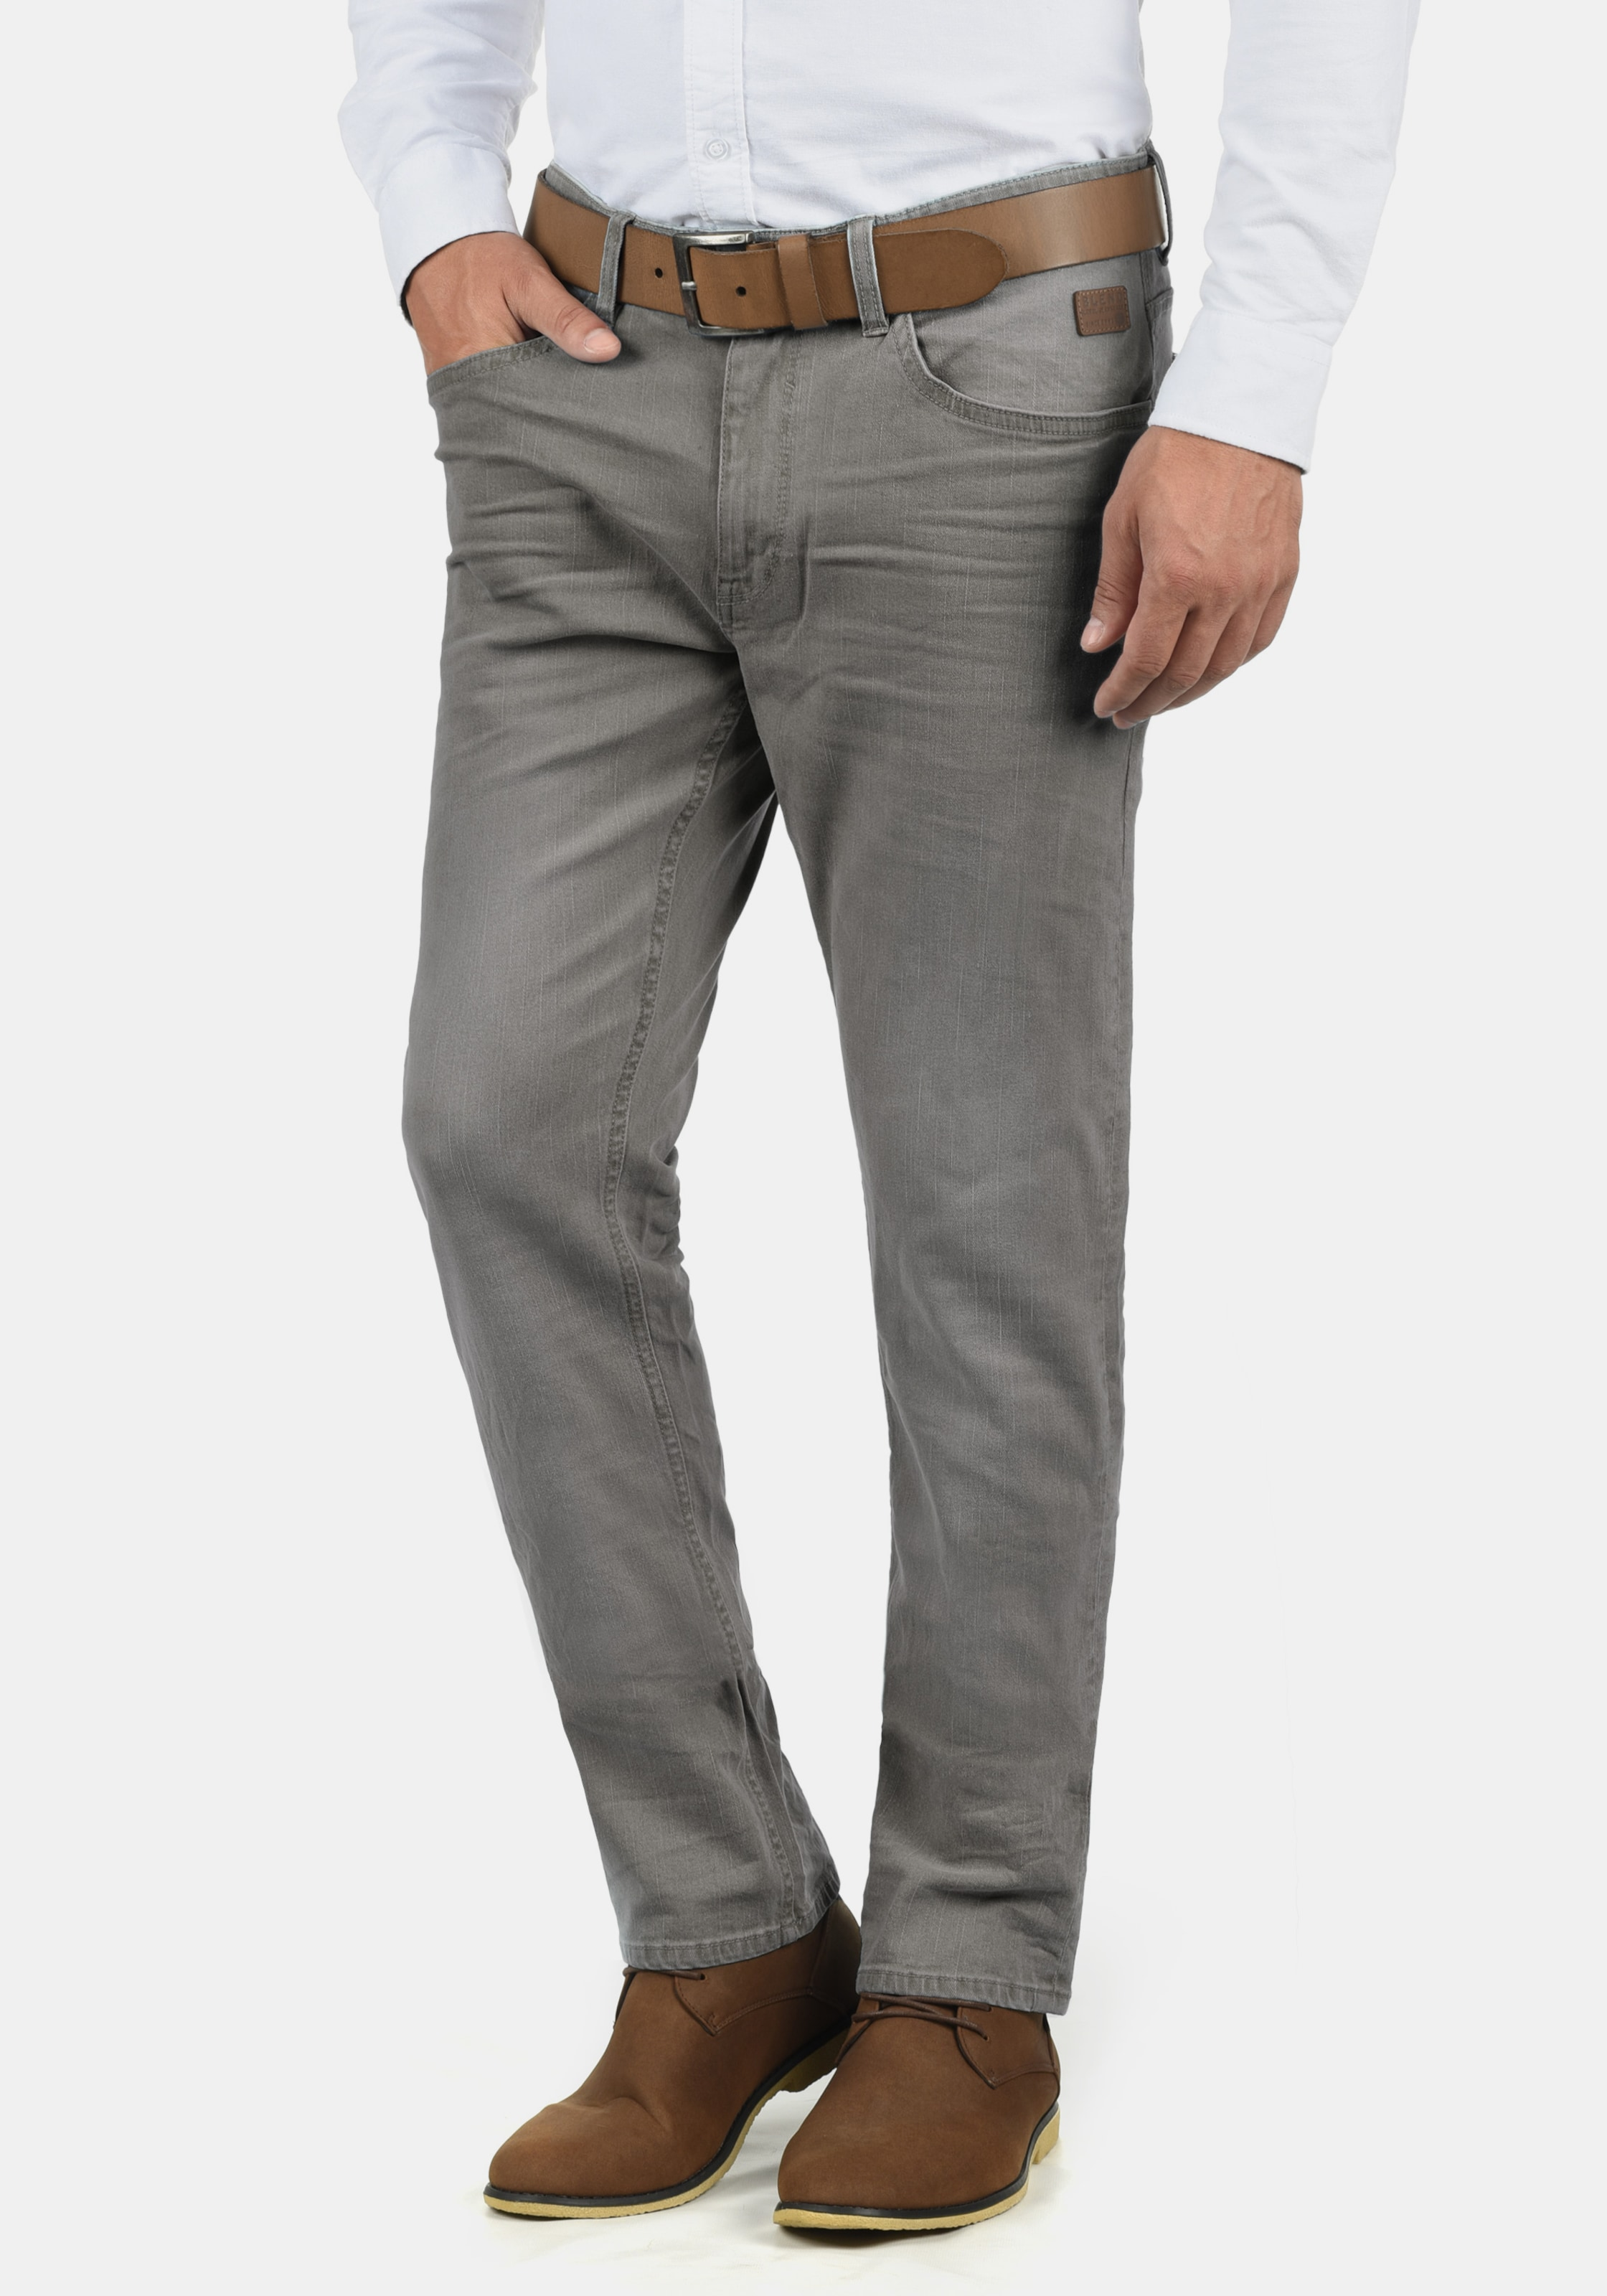 Blend jeans In Denim Grey 'taifun' pocket 5 CeorxdB